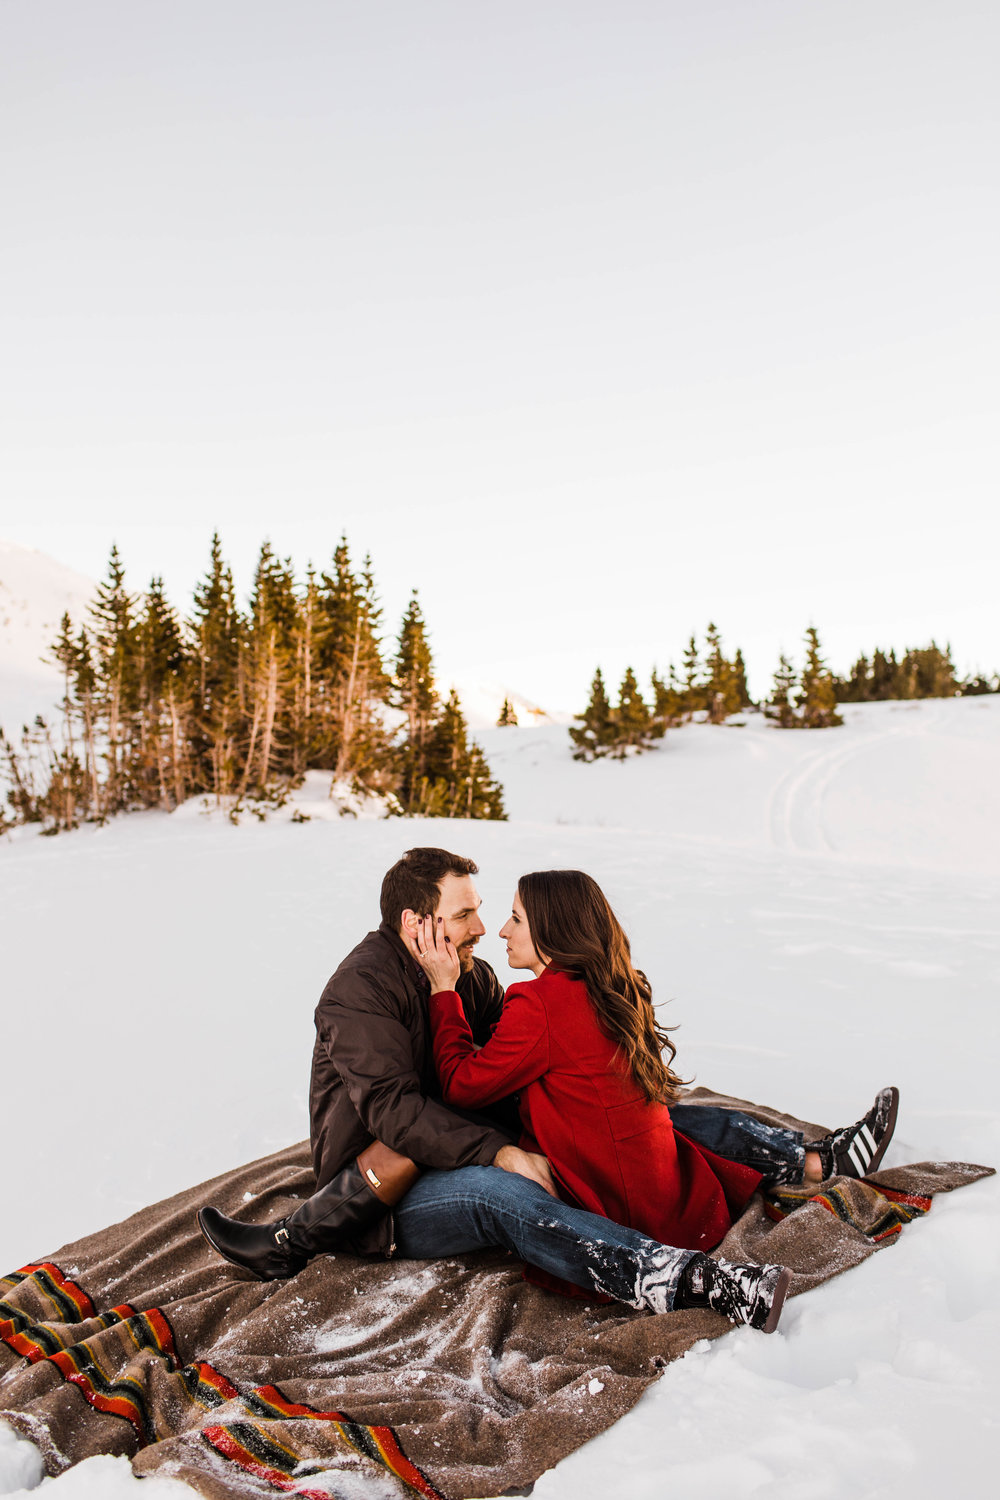 Engagement Session in the snow | Colorado Elopement Photographer